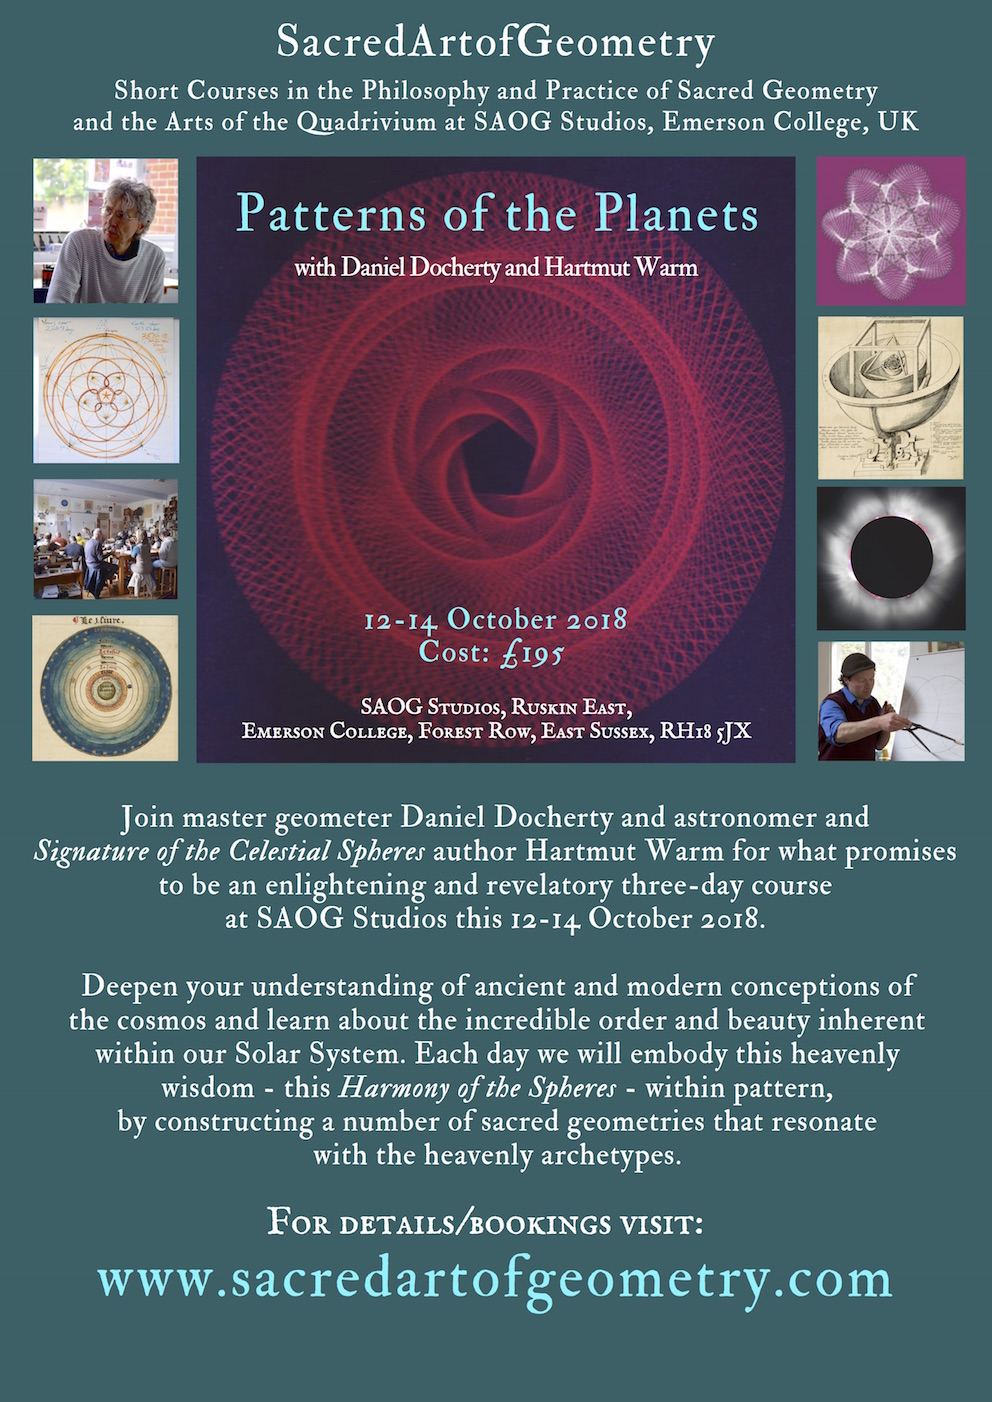 Patterns of the Planets